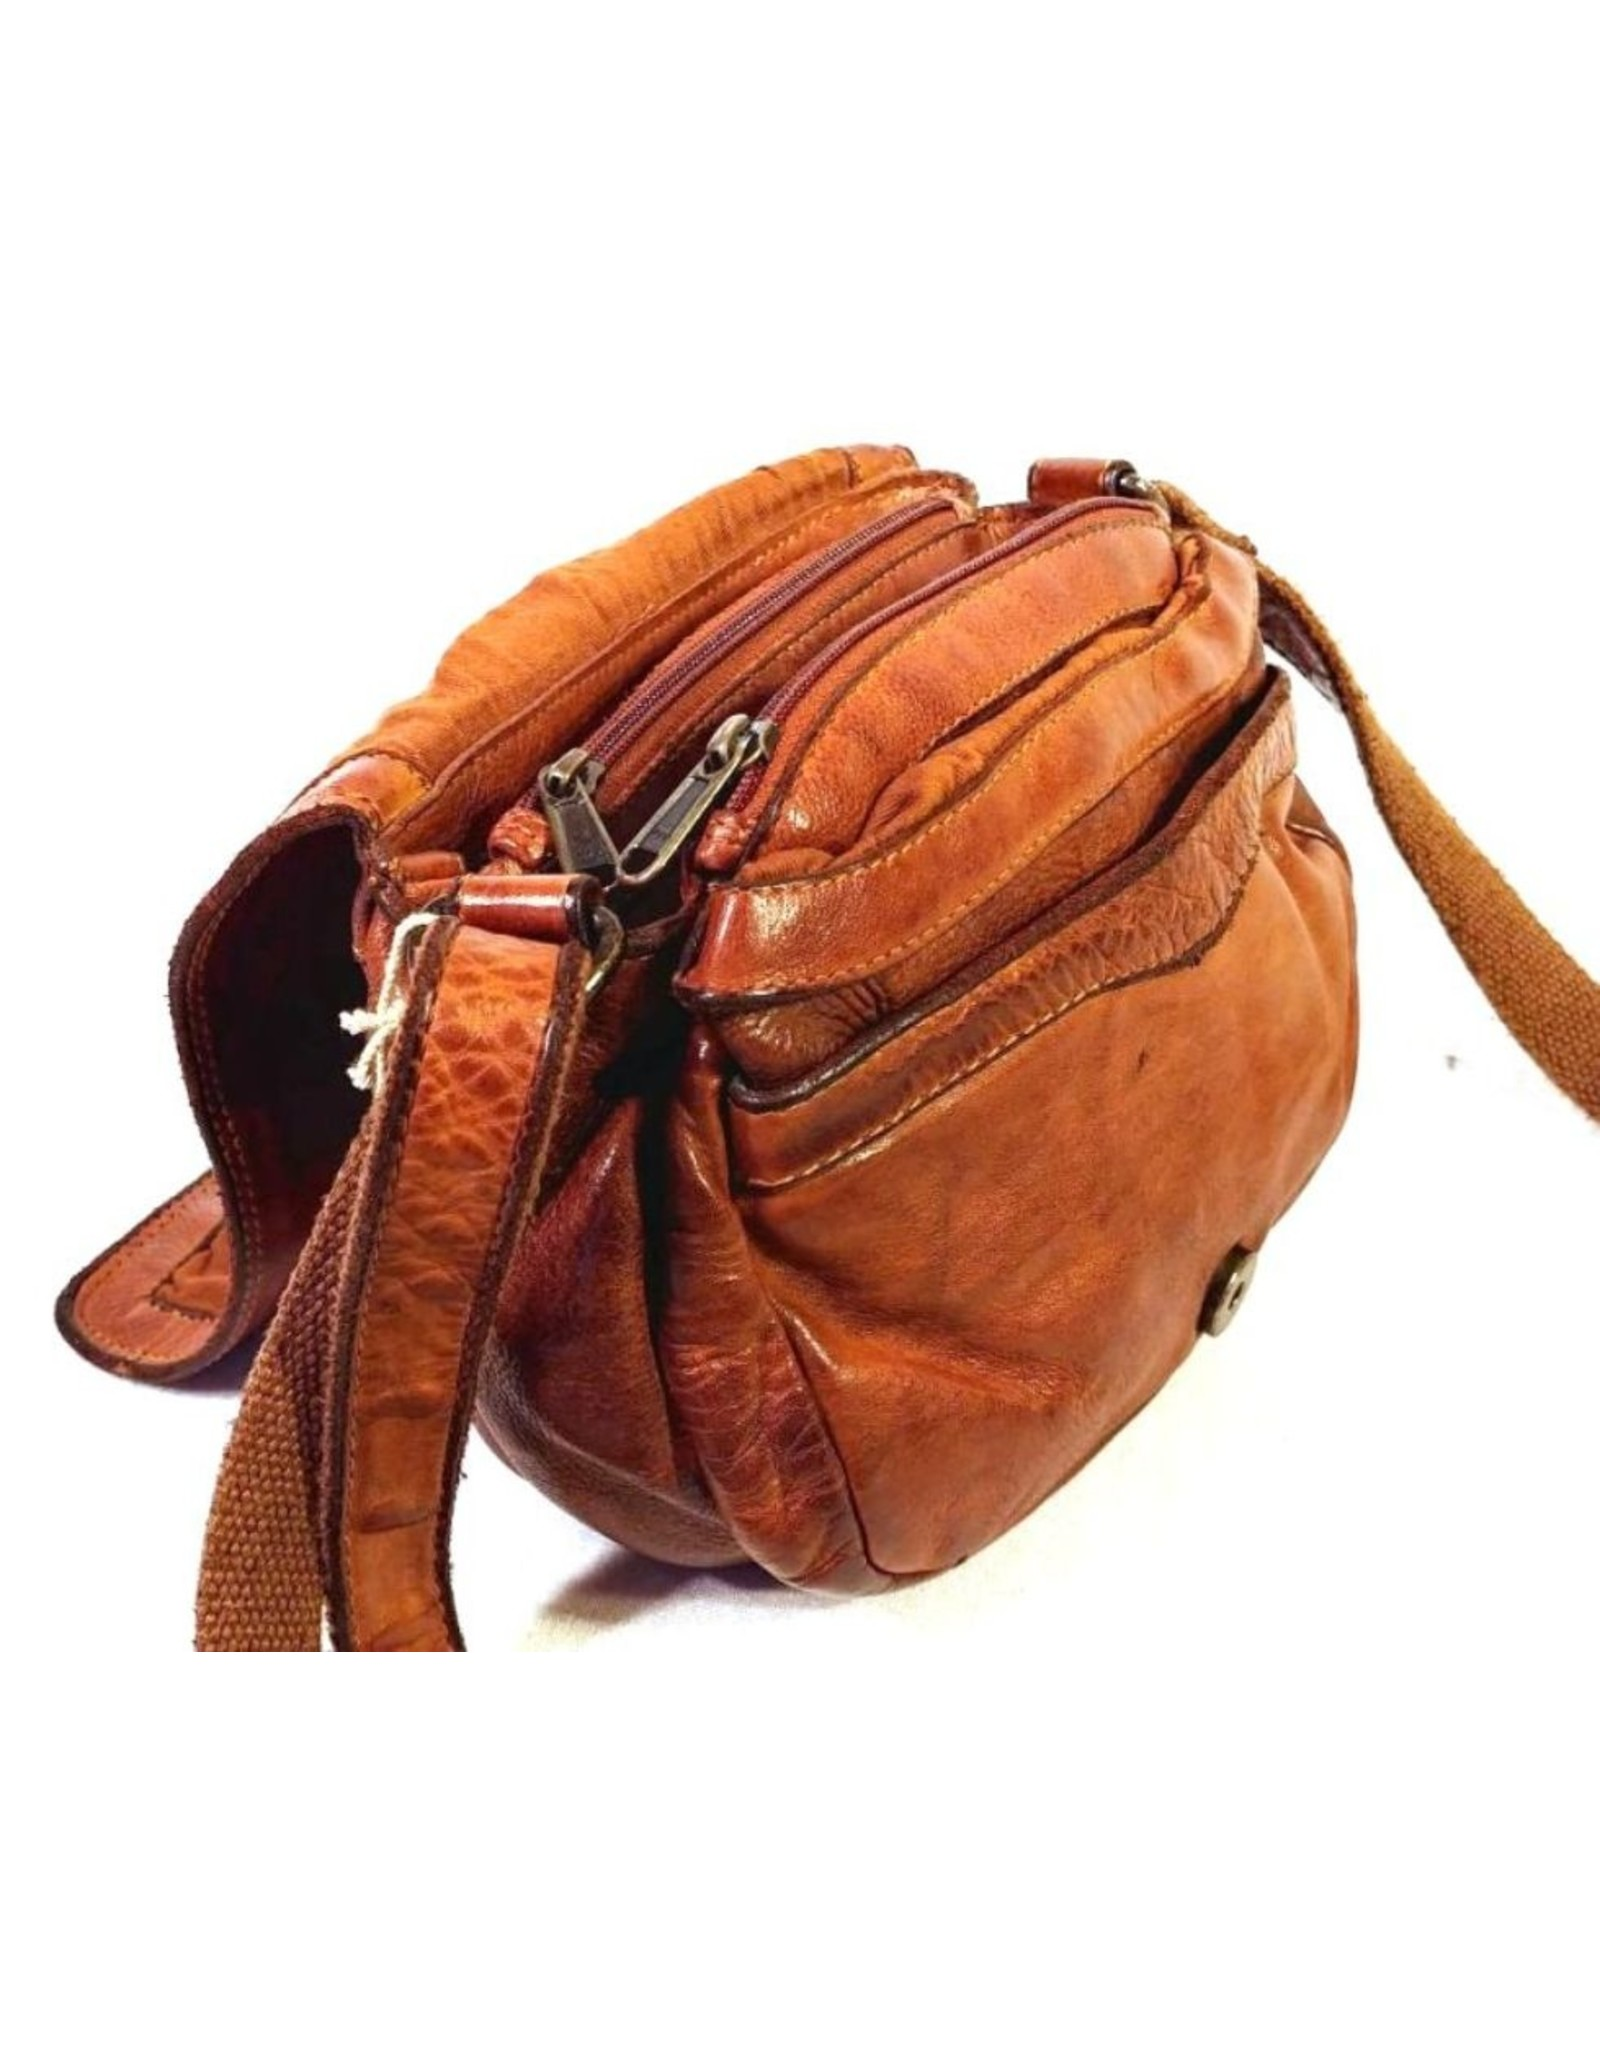 HillBurry Leather bags - HillBurry Leather Shoulder bag with  Cover. Washed Leather Cognac